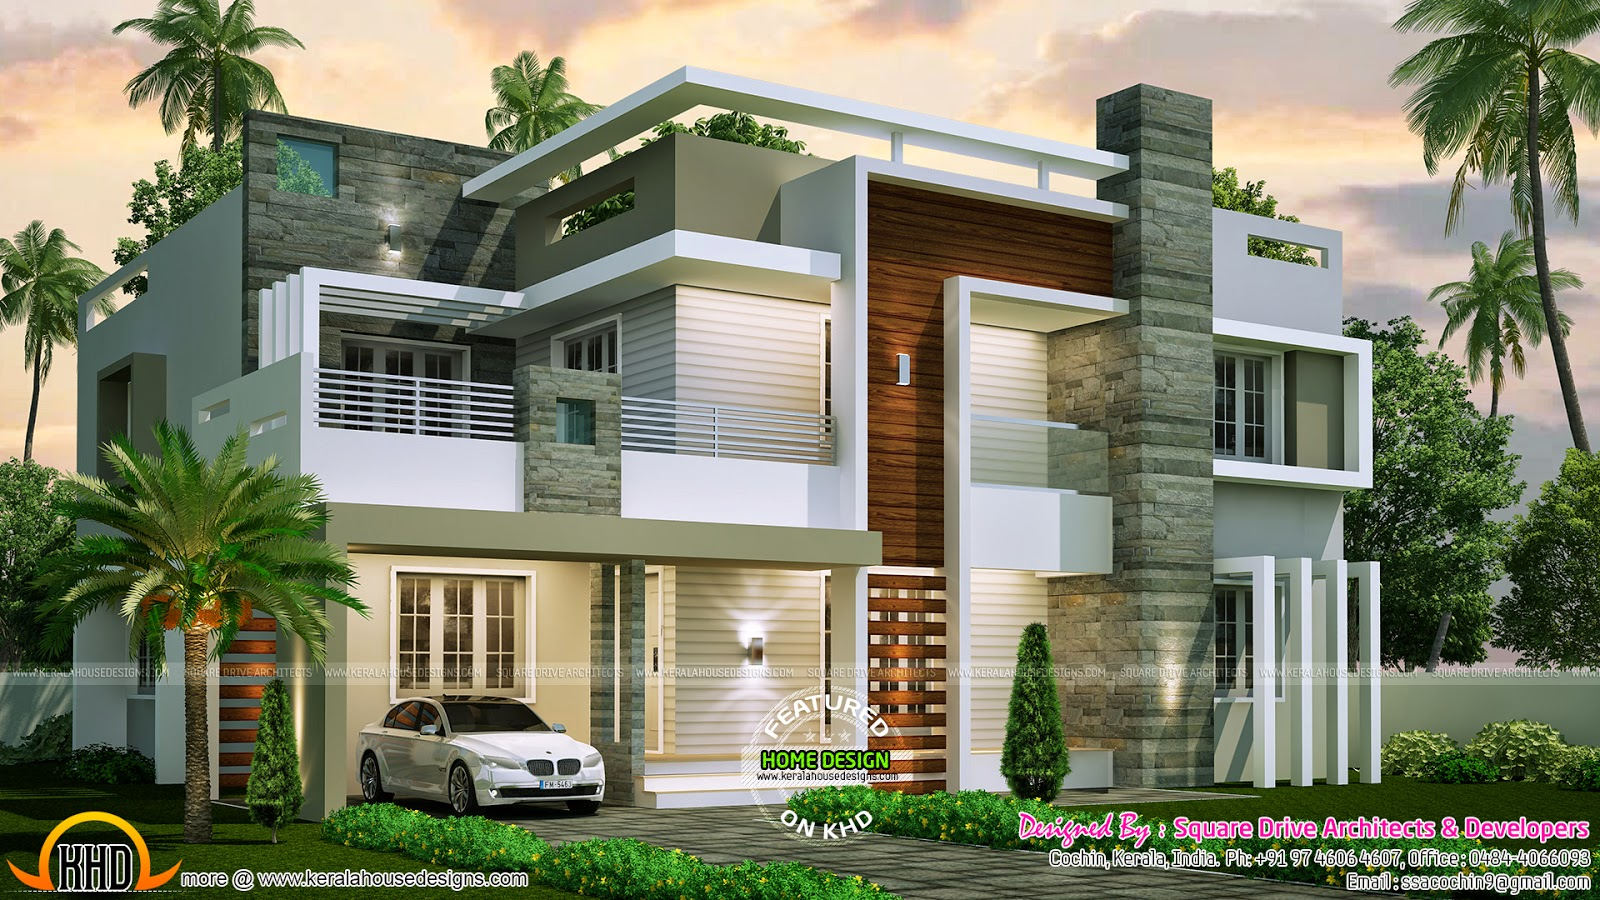 4 bedroom contemporary home design kerala home design for Home designs kerala architects